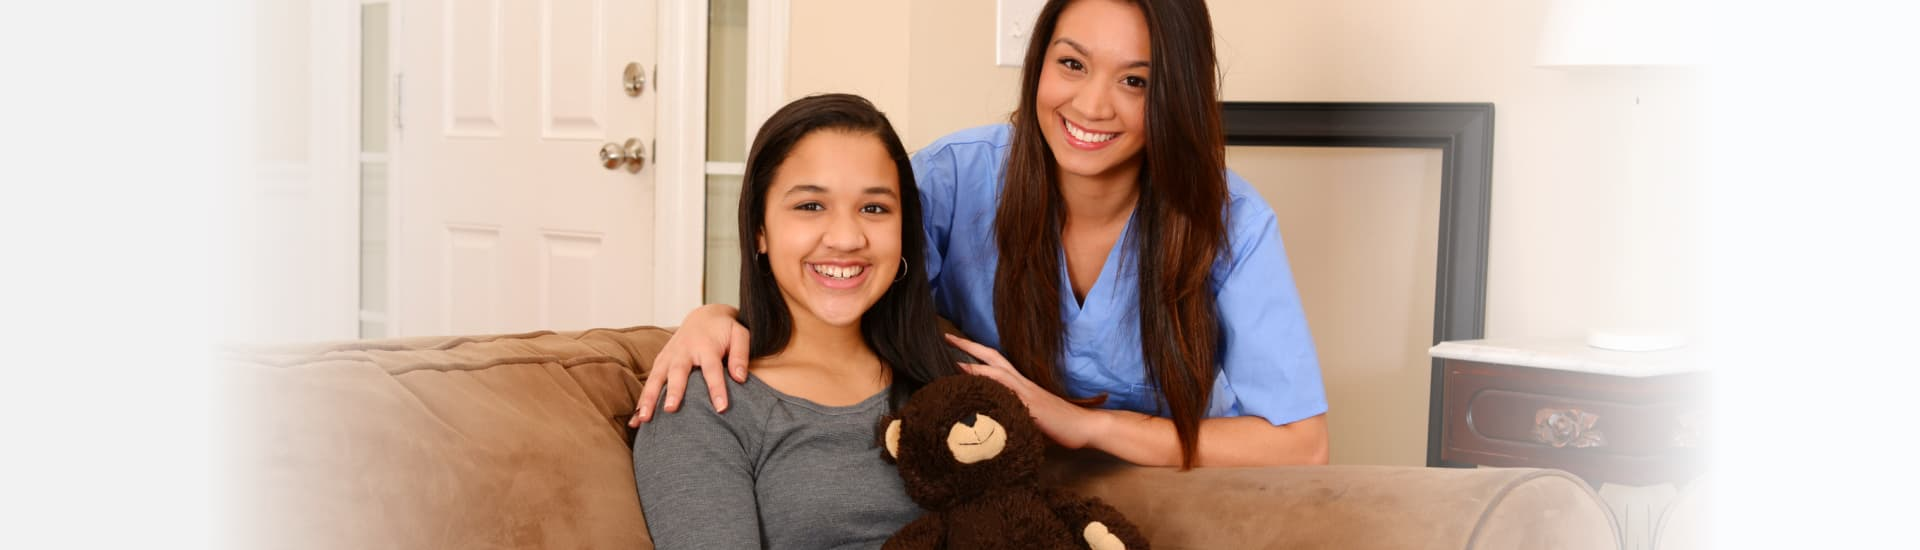 caregiver and a woman smiling